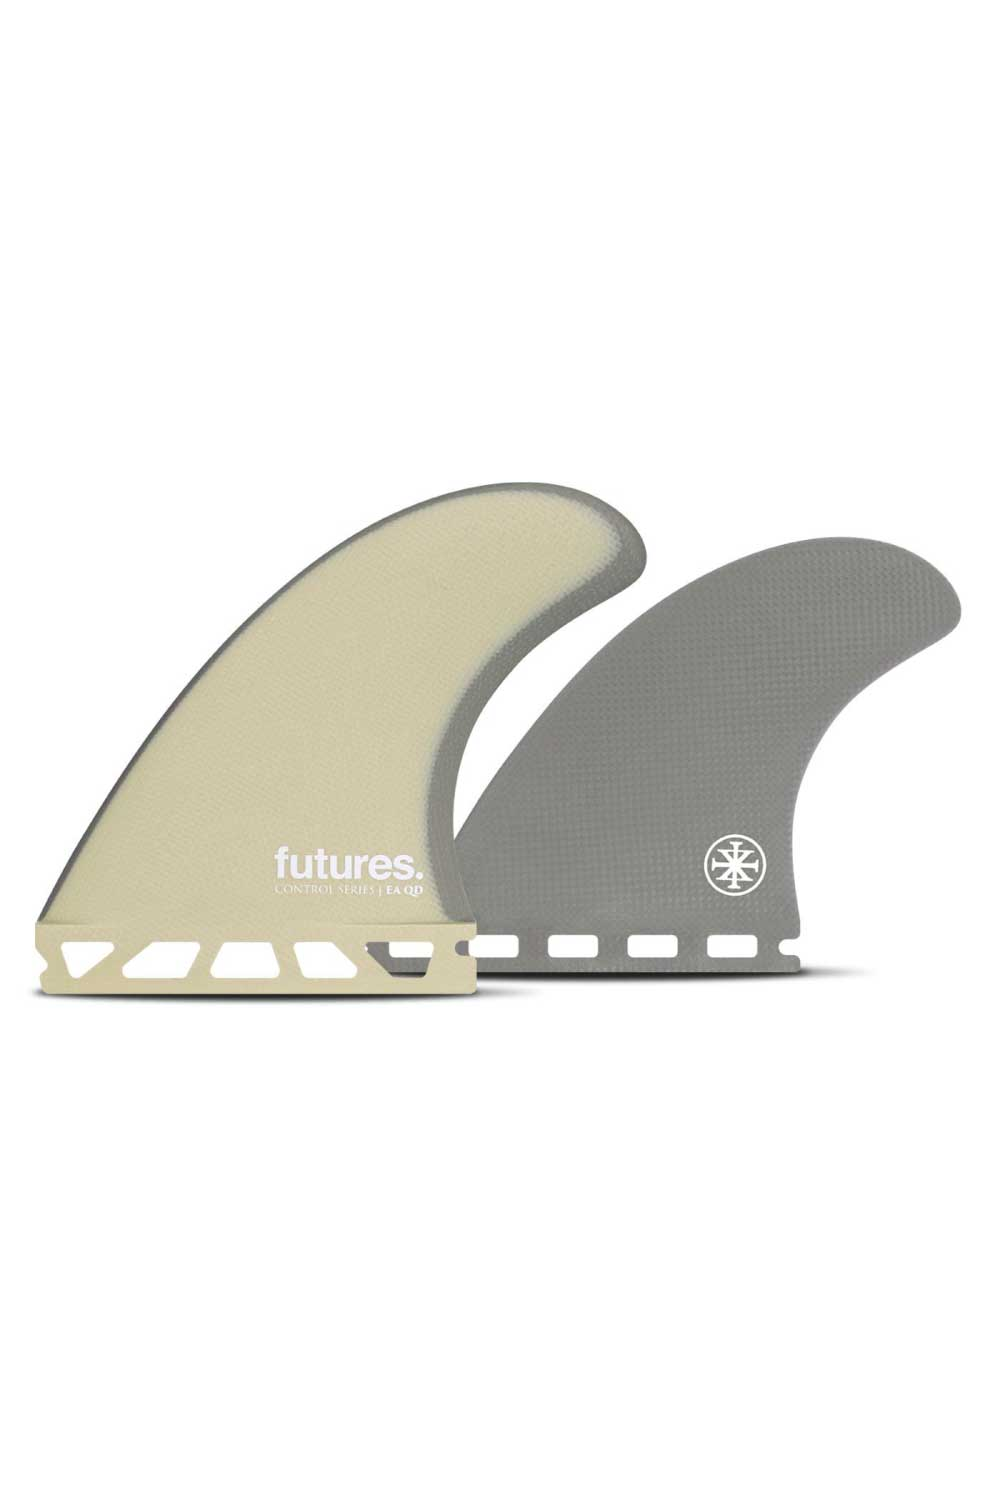 Futures FEA Control Series Quad Fin Set